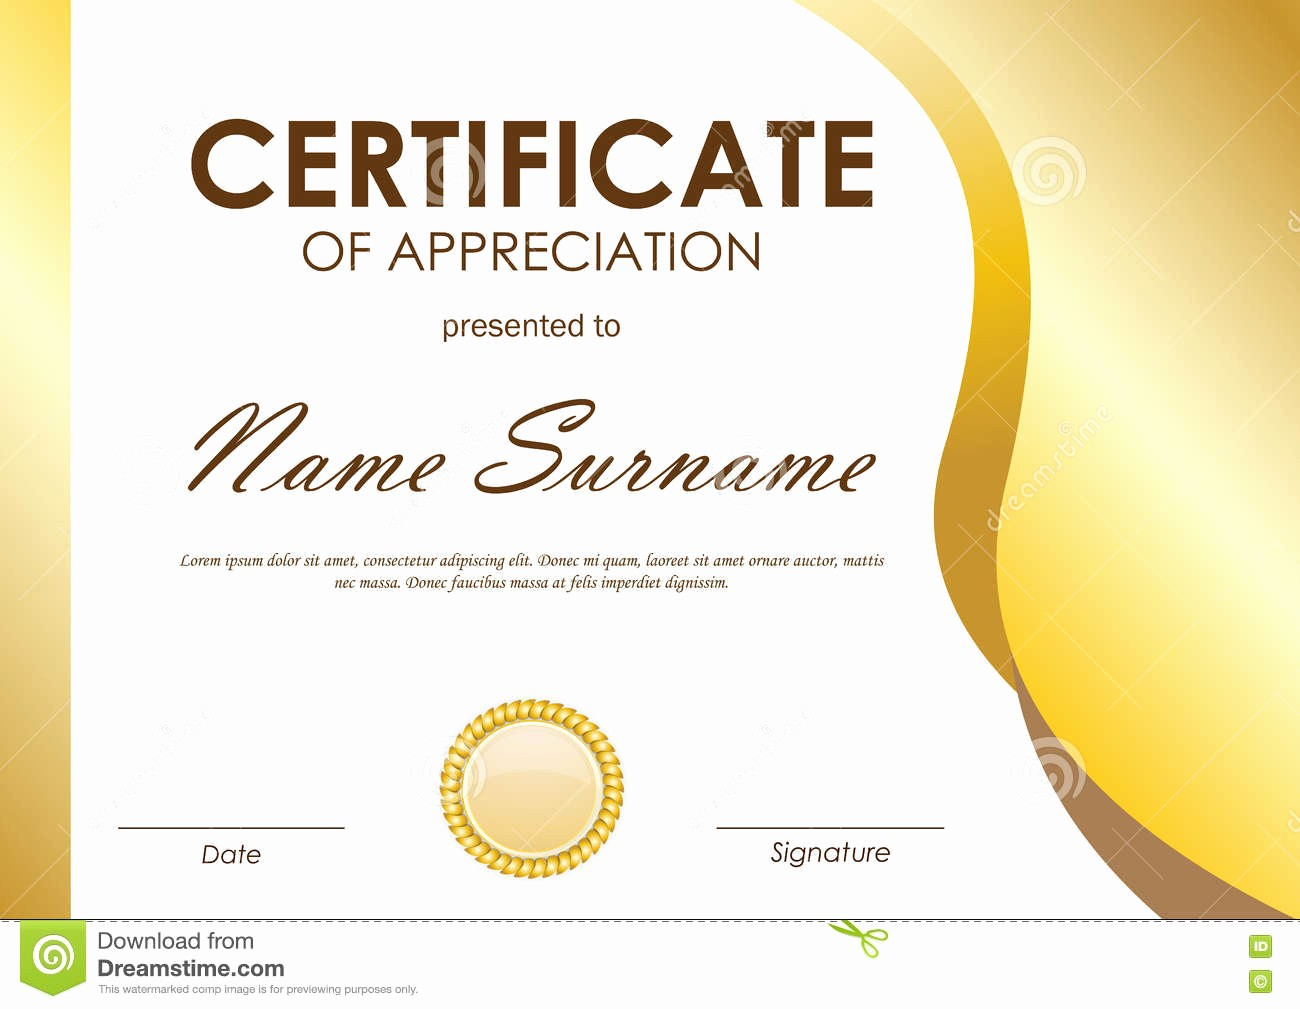 Free Download Certificate Of Appreciation Beautiful Certificate Appreciation Template Stock Vector